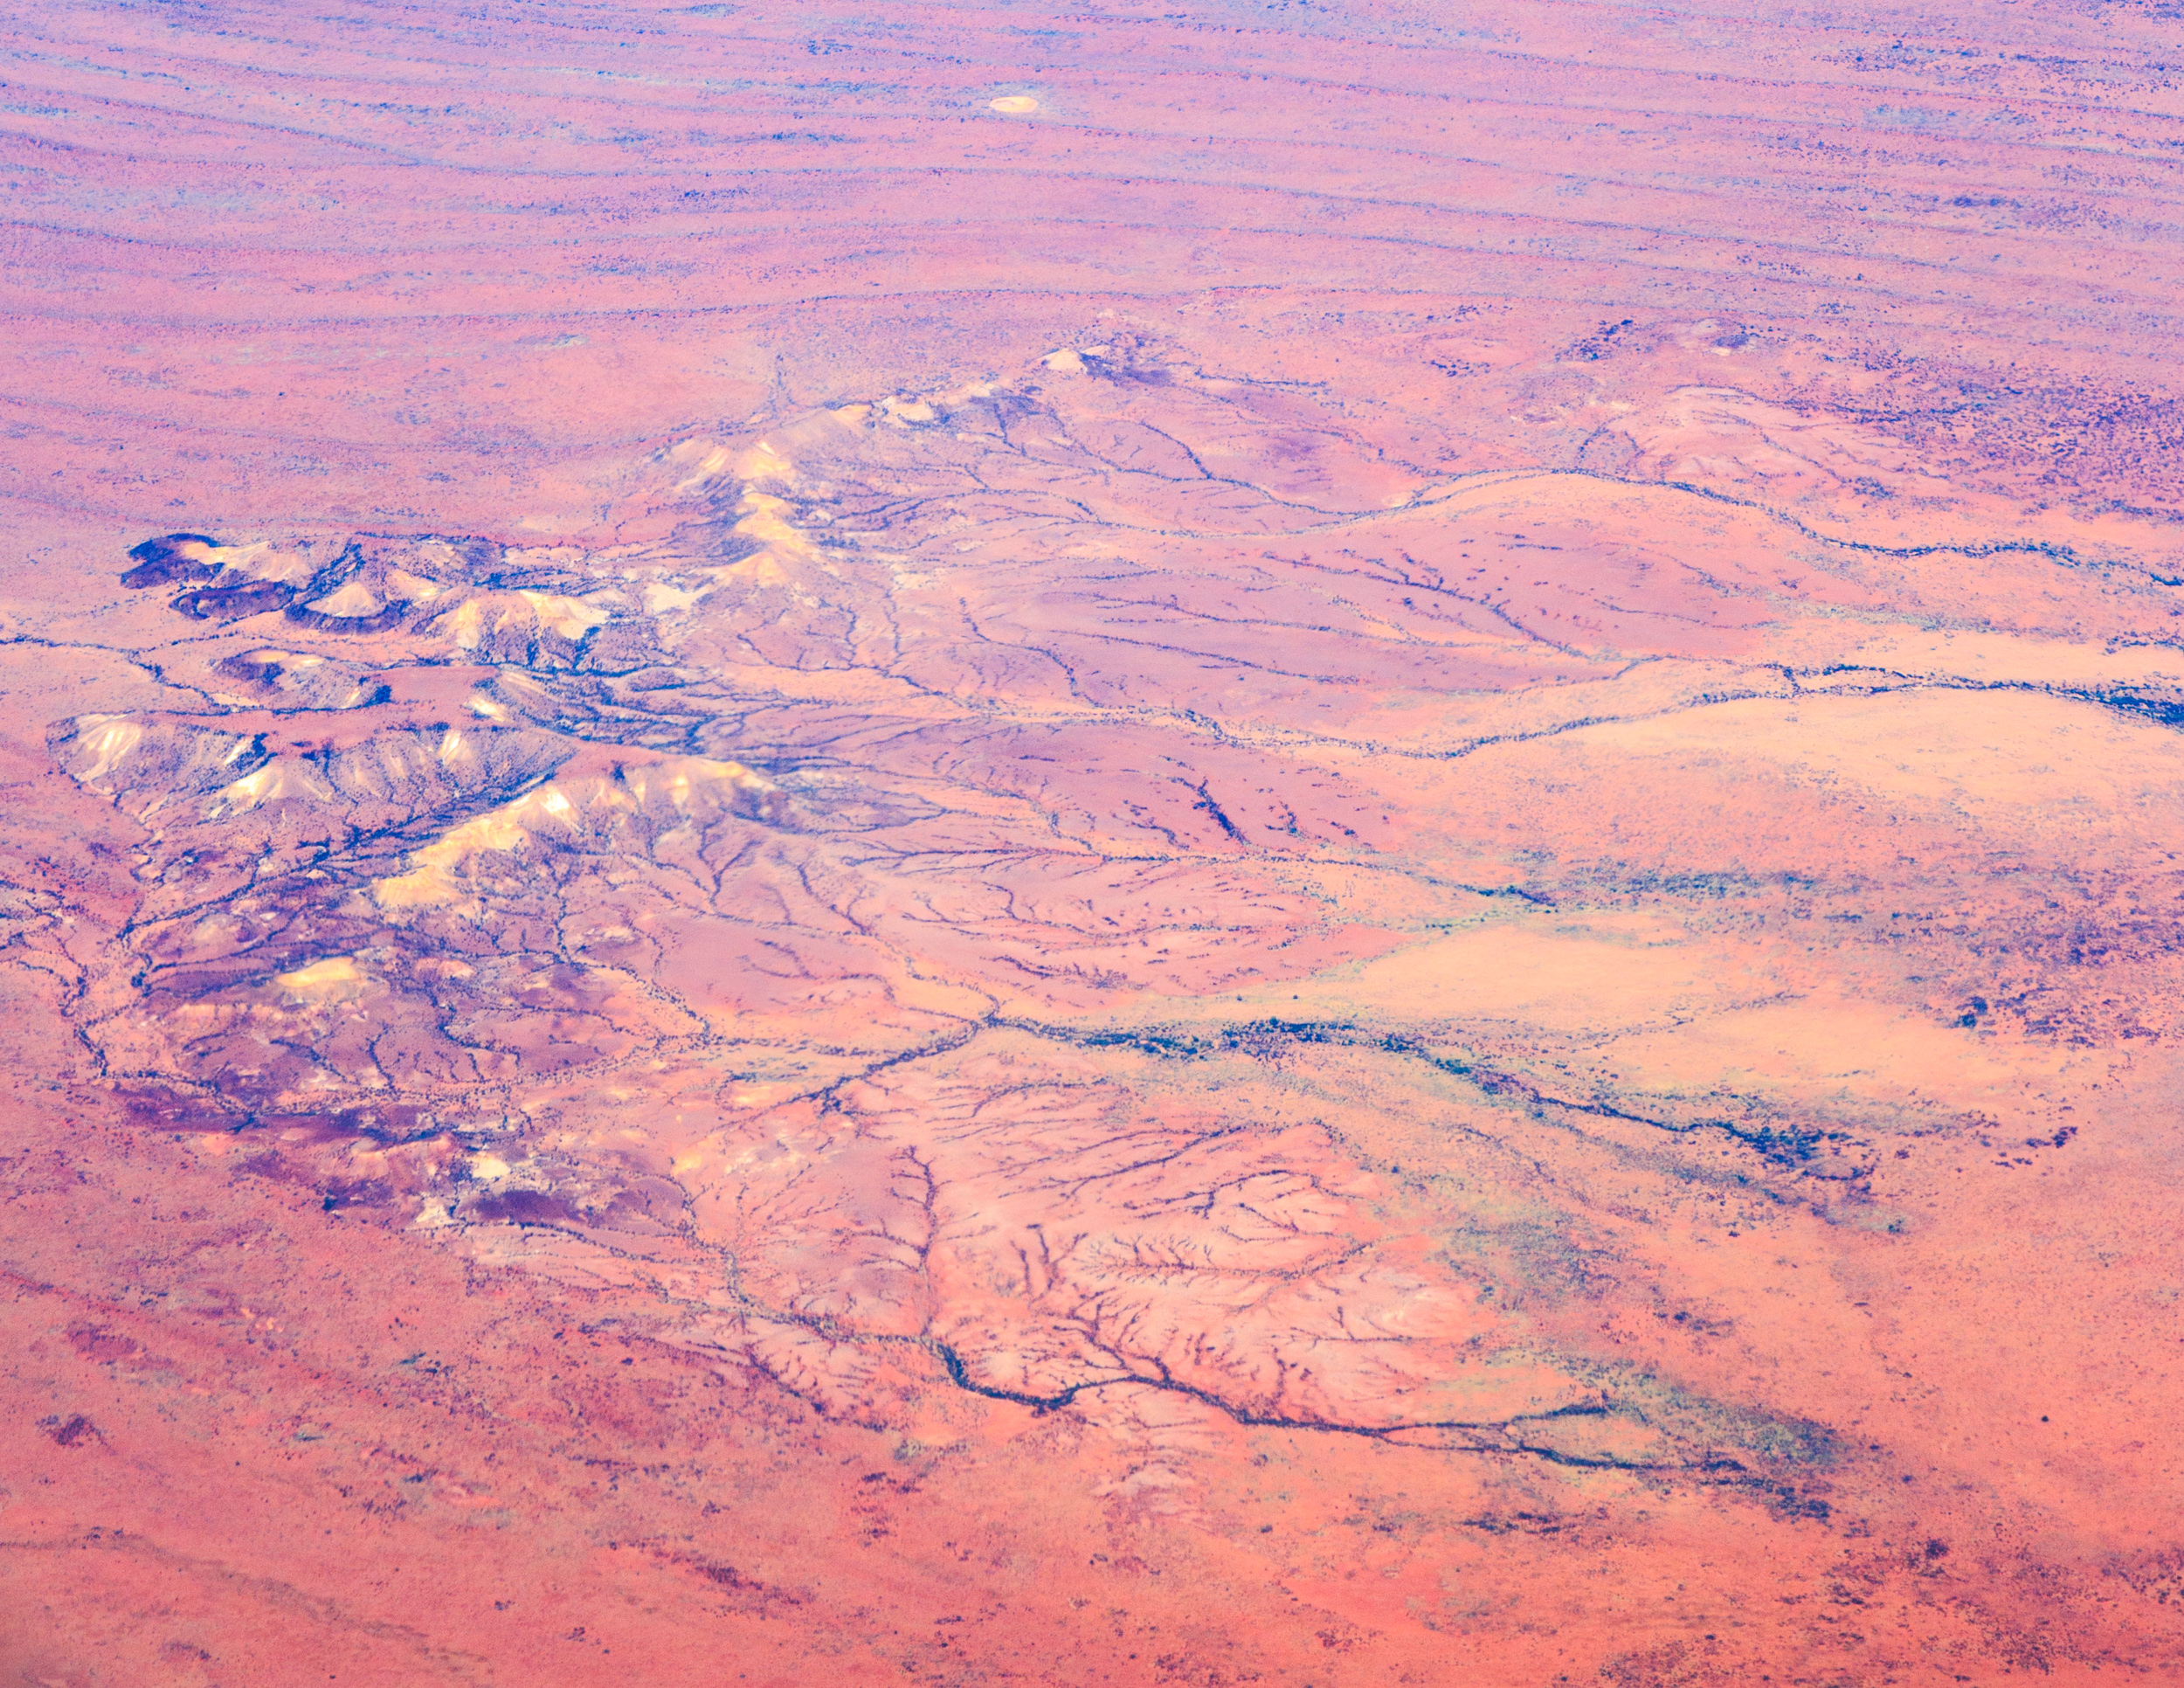 The flight over the Outback to Alice Springs